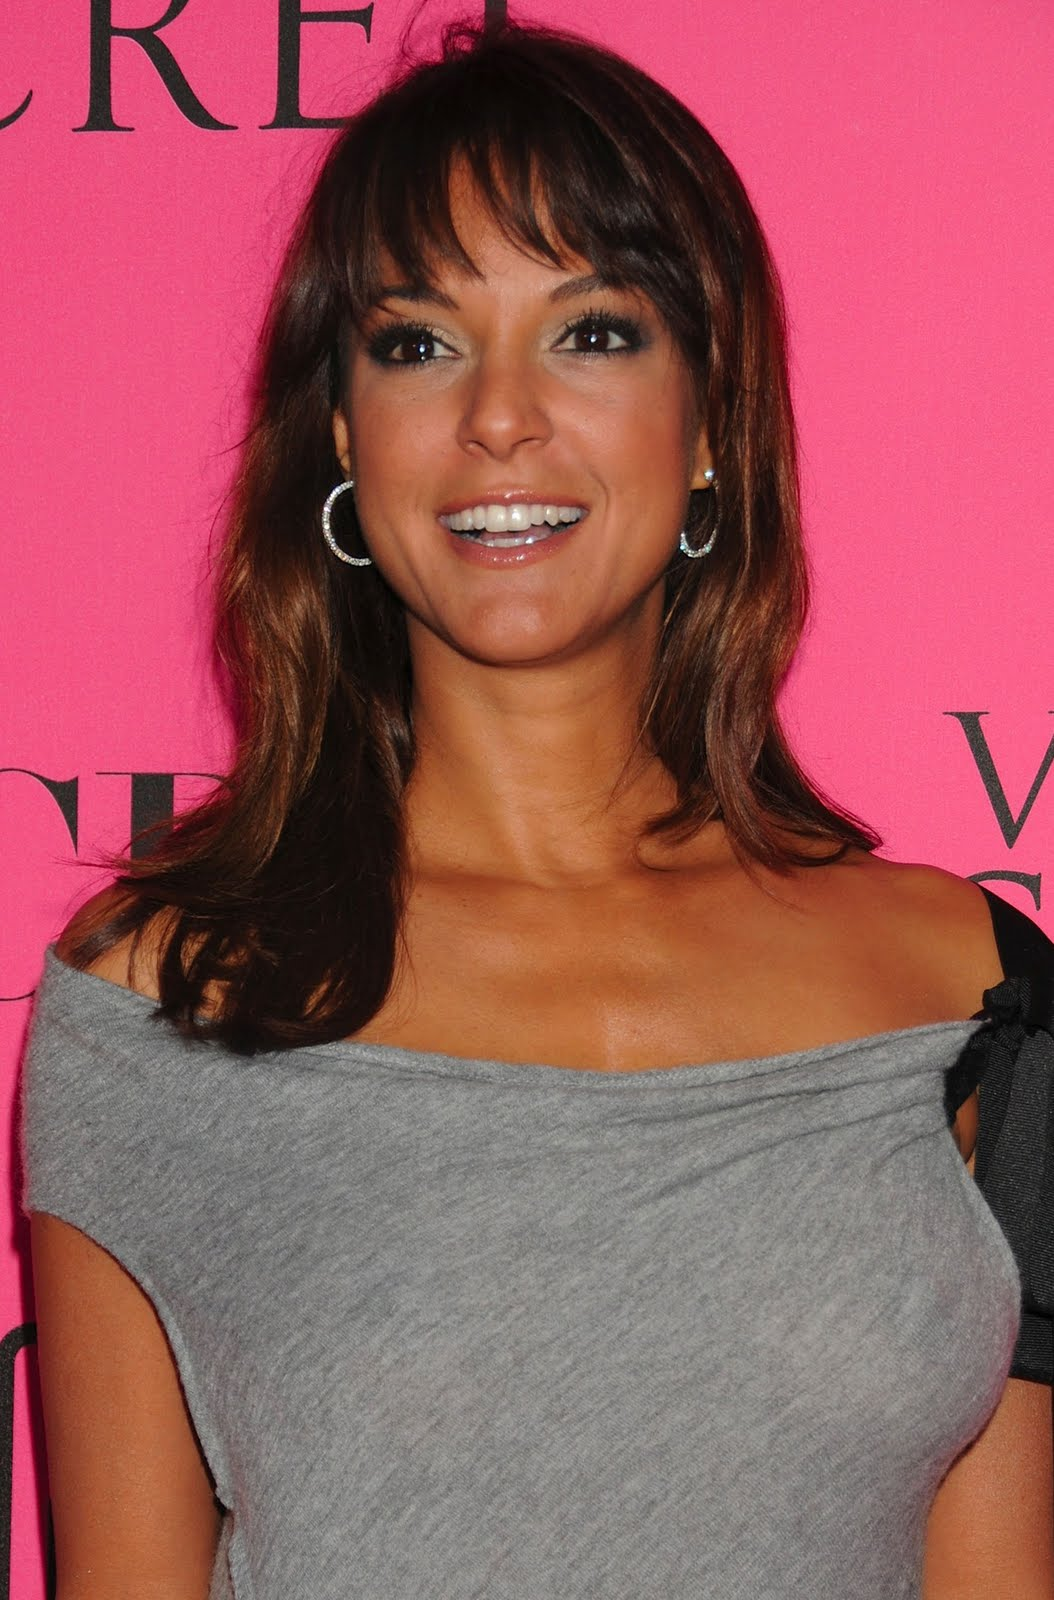 larue hindu single men Eva larue dating history, 2018, 2017, list of eva larue eva larue is currently single maybe eva`s love luck is not really for men too.